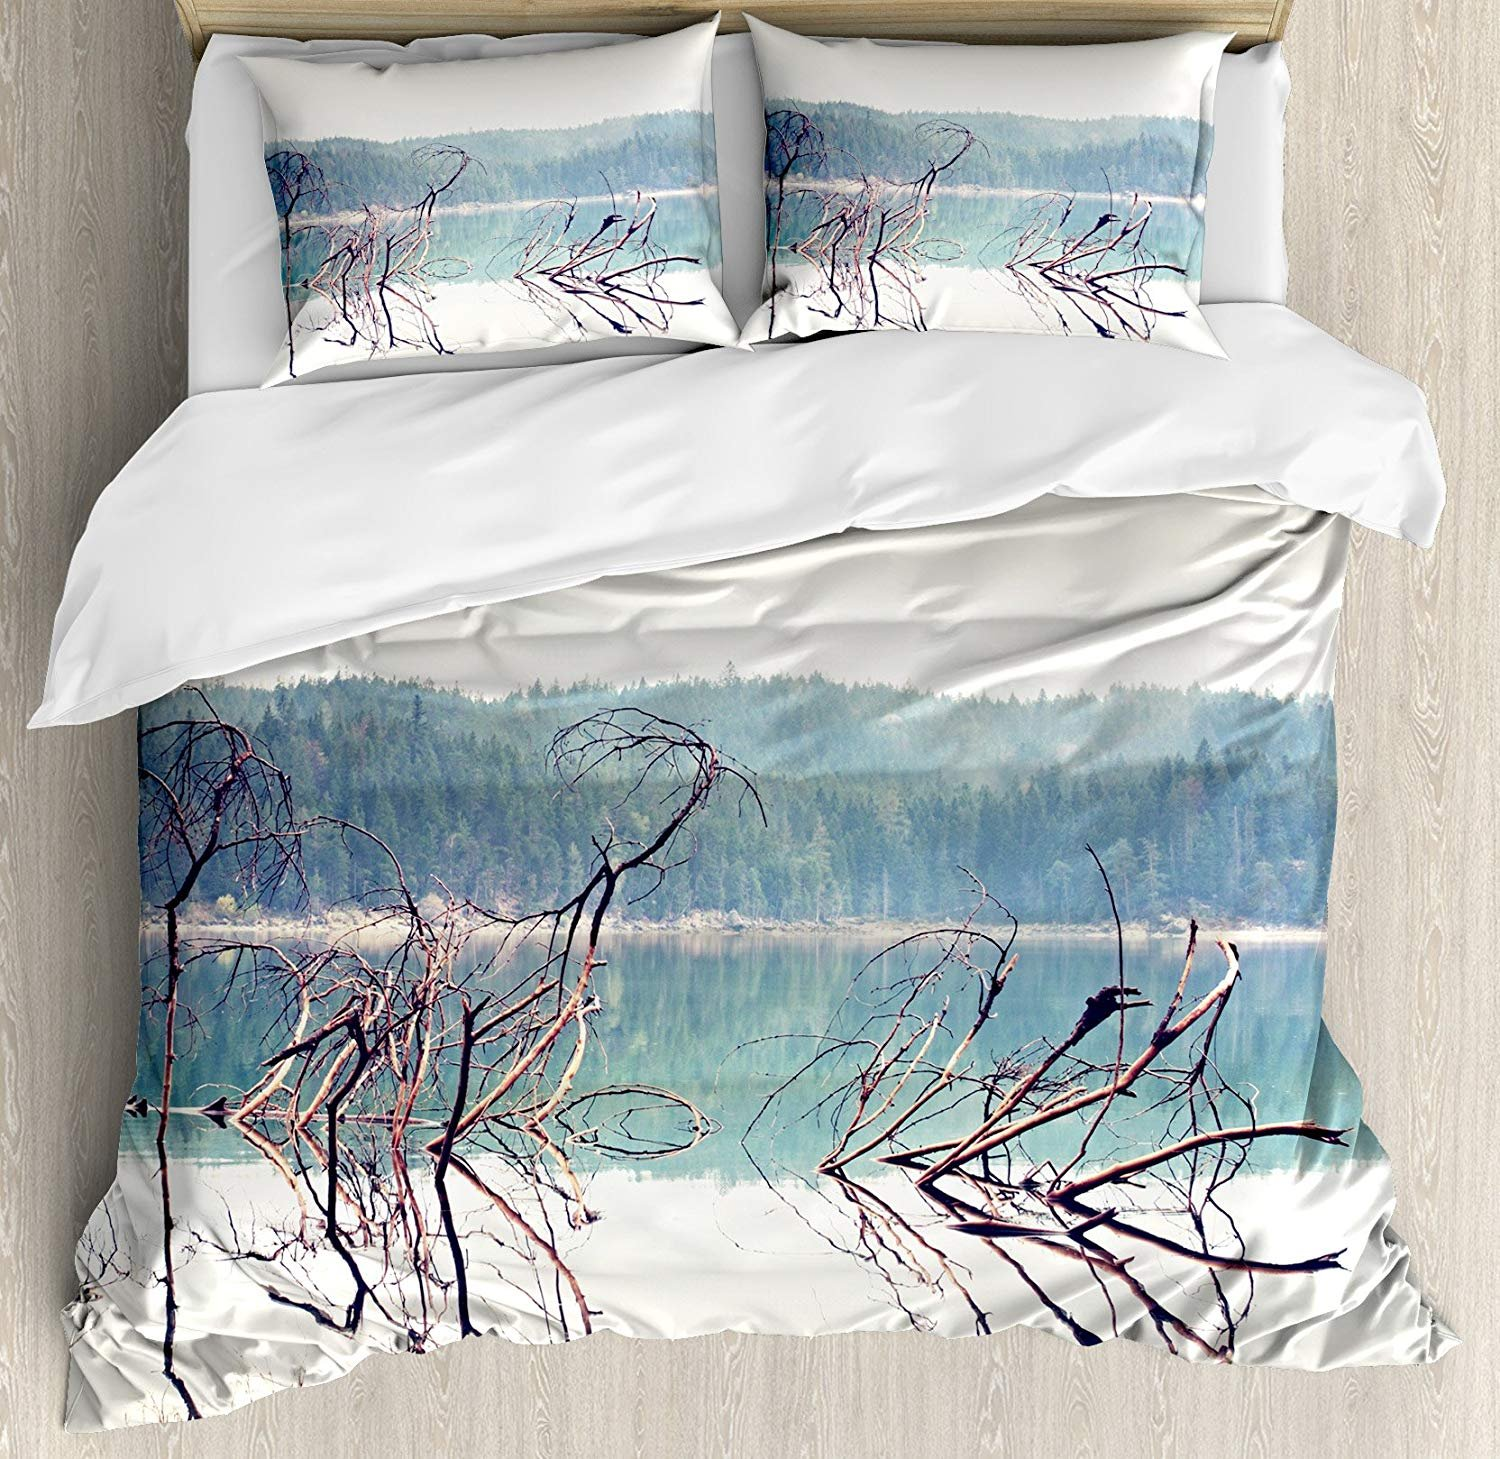 Driftwood Bedding Sets, Nature Theme Branch of the Fallen Tree near the Mountain Lake and the Forest, 4 Piece Duvet Cover Set Quilt Bedspread for Childrens/Kids/Teens/Adults, Cream Green,Twin Size